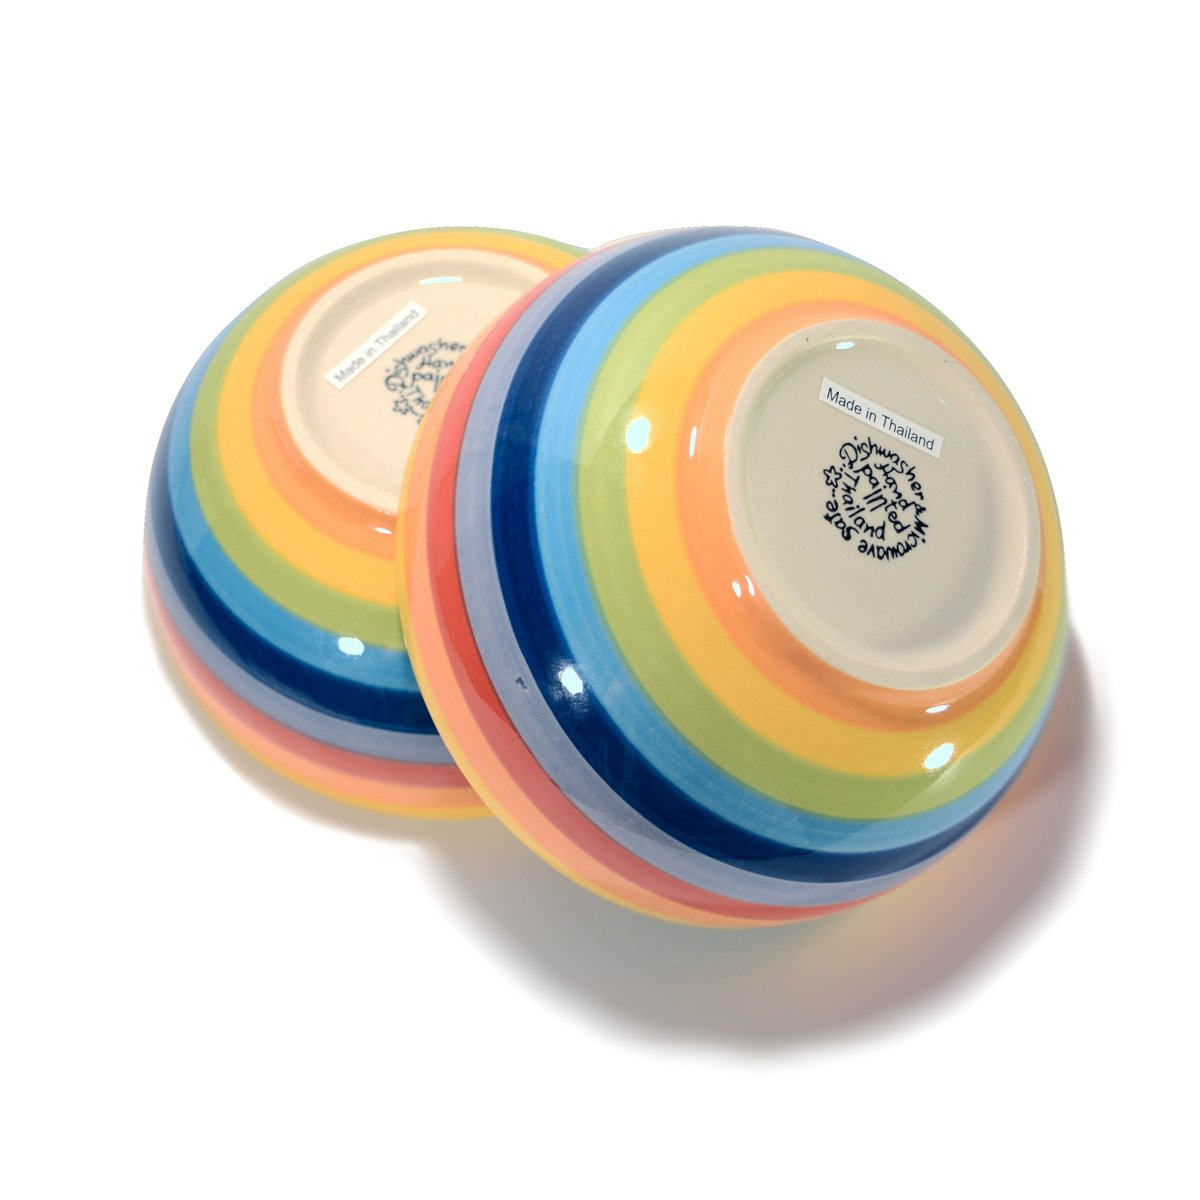 CinMin Colorful Striped Ceramic Stoneware Soup and Cereal Bowl 6 Inch Set of 2 CnCrBw06St